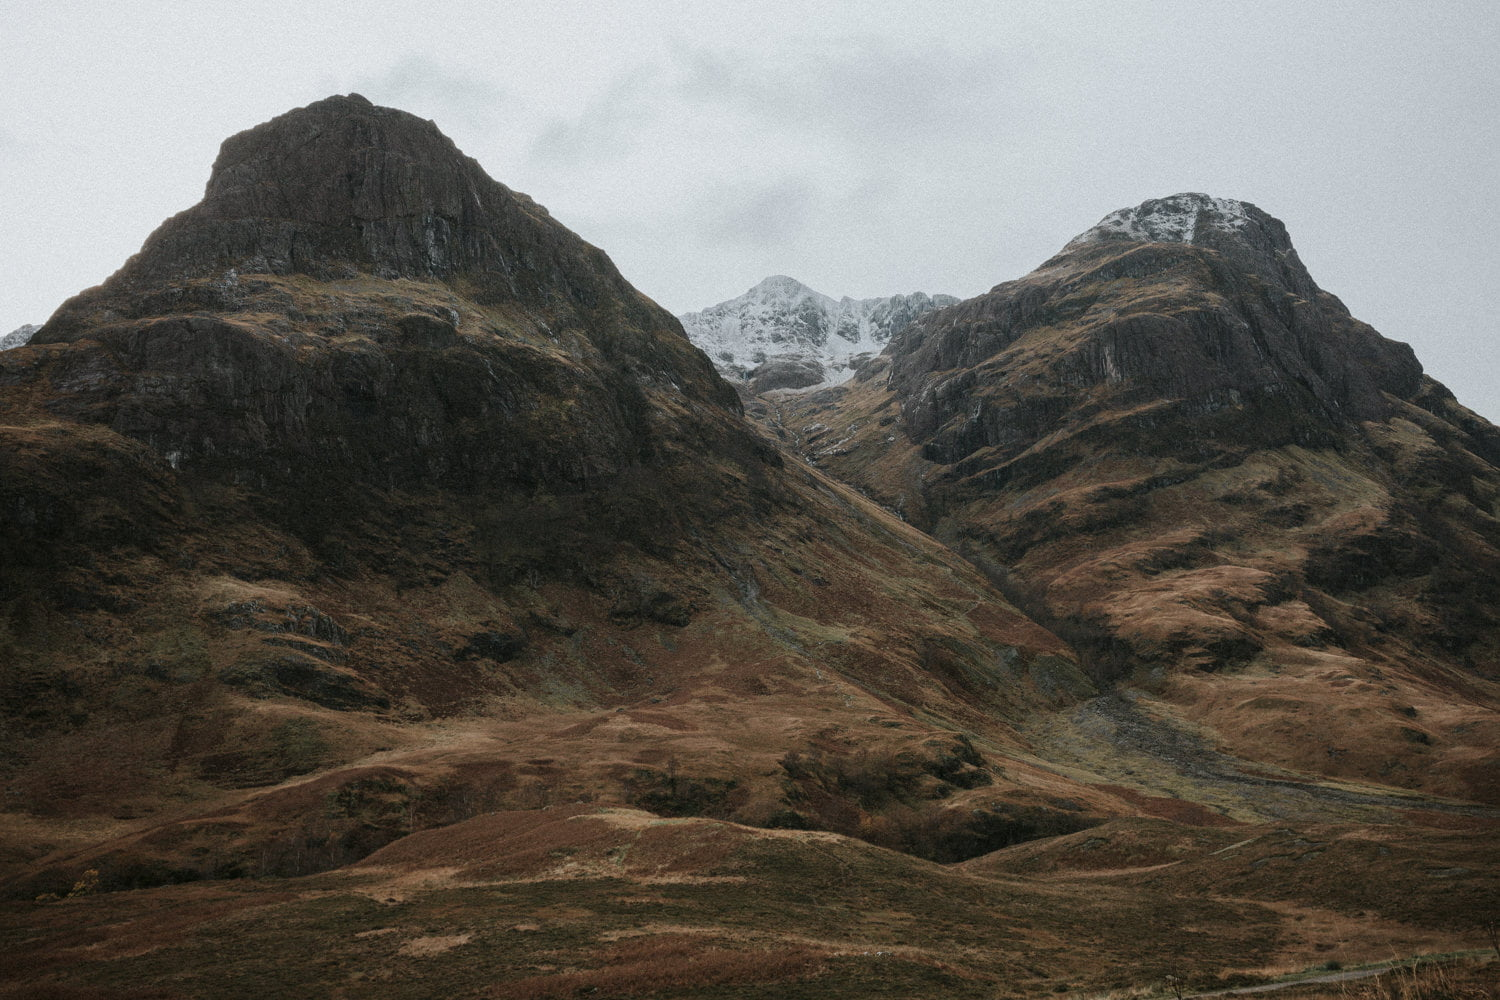 Glencoe, Three Sisters, Glecoe elopement, Scottish Highlands elopement, Scottish Highlands, Glencoe photography, Glencoe wedding, Glencoe wedding photographer, Glencoe wedding photos, Glencoe elopement, Bernadeta Kupiec